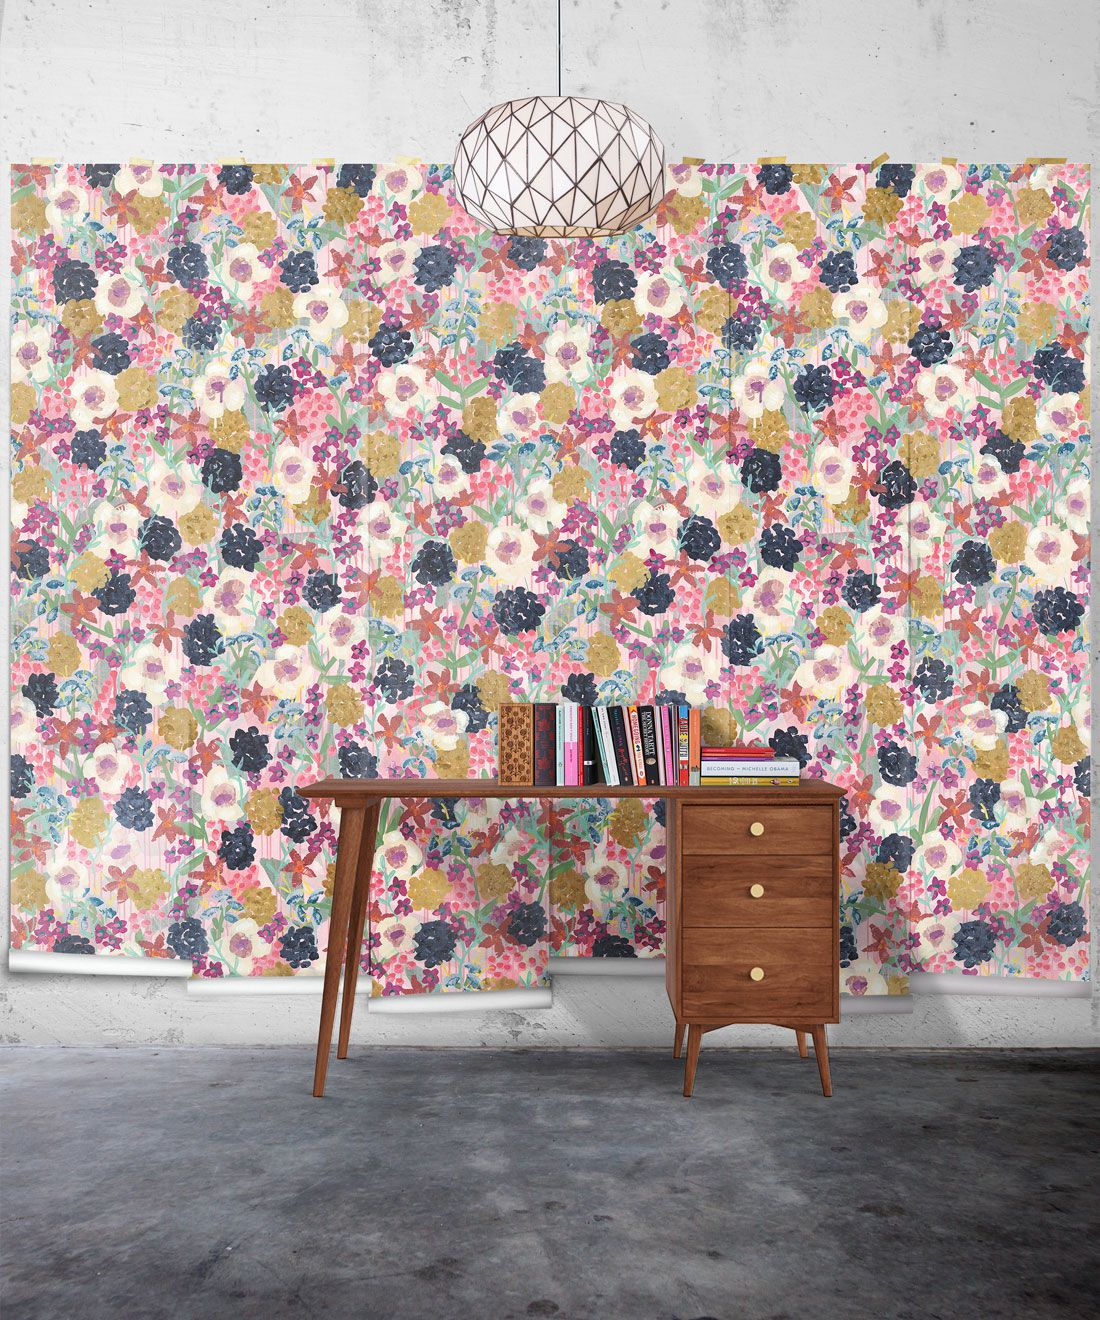 Garden State Wallpaper •Colorful Floral Wallpaper • Tiff Manuell • Abstract Expressionist Wallpaper • wide insitu